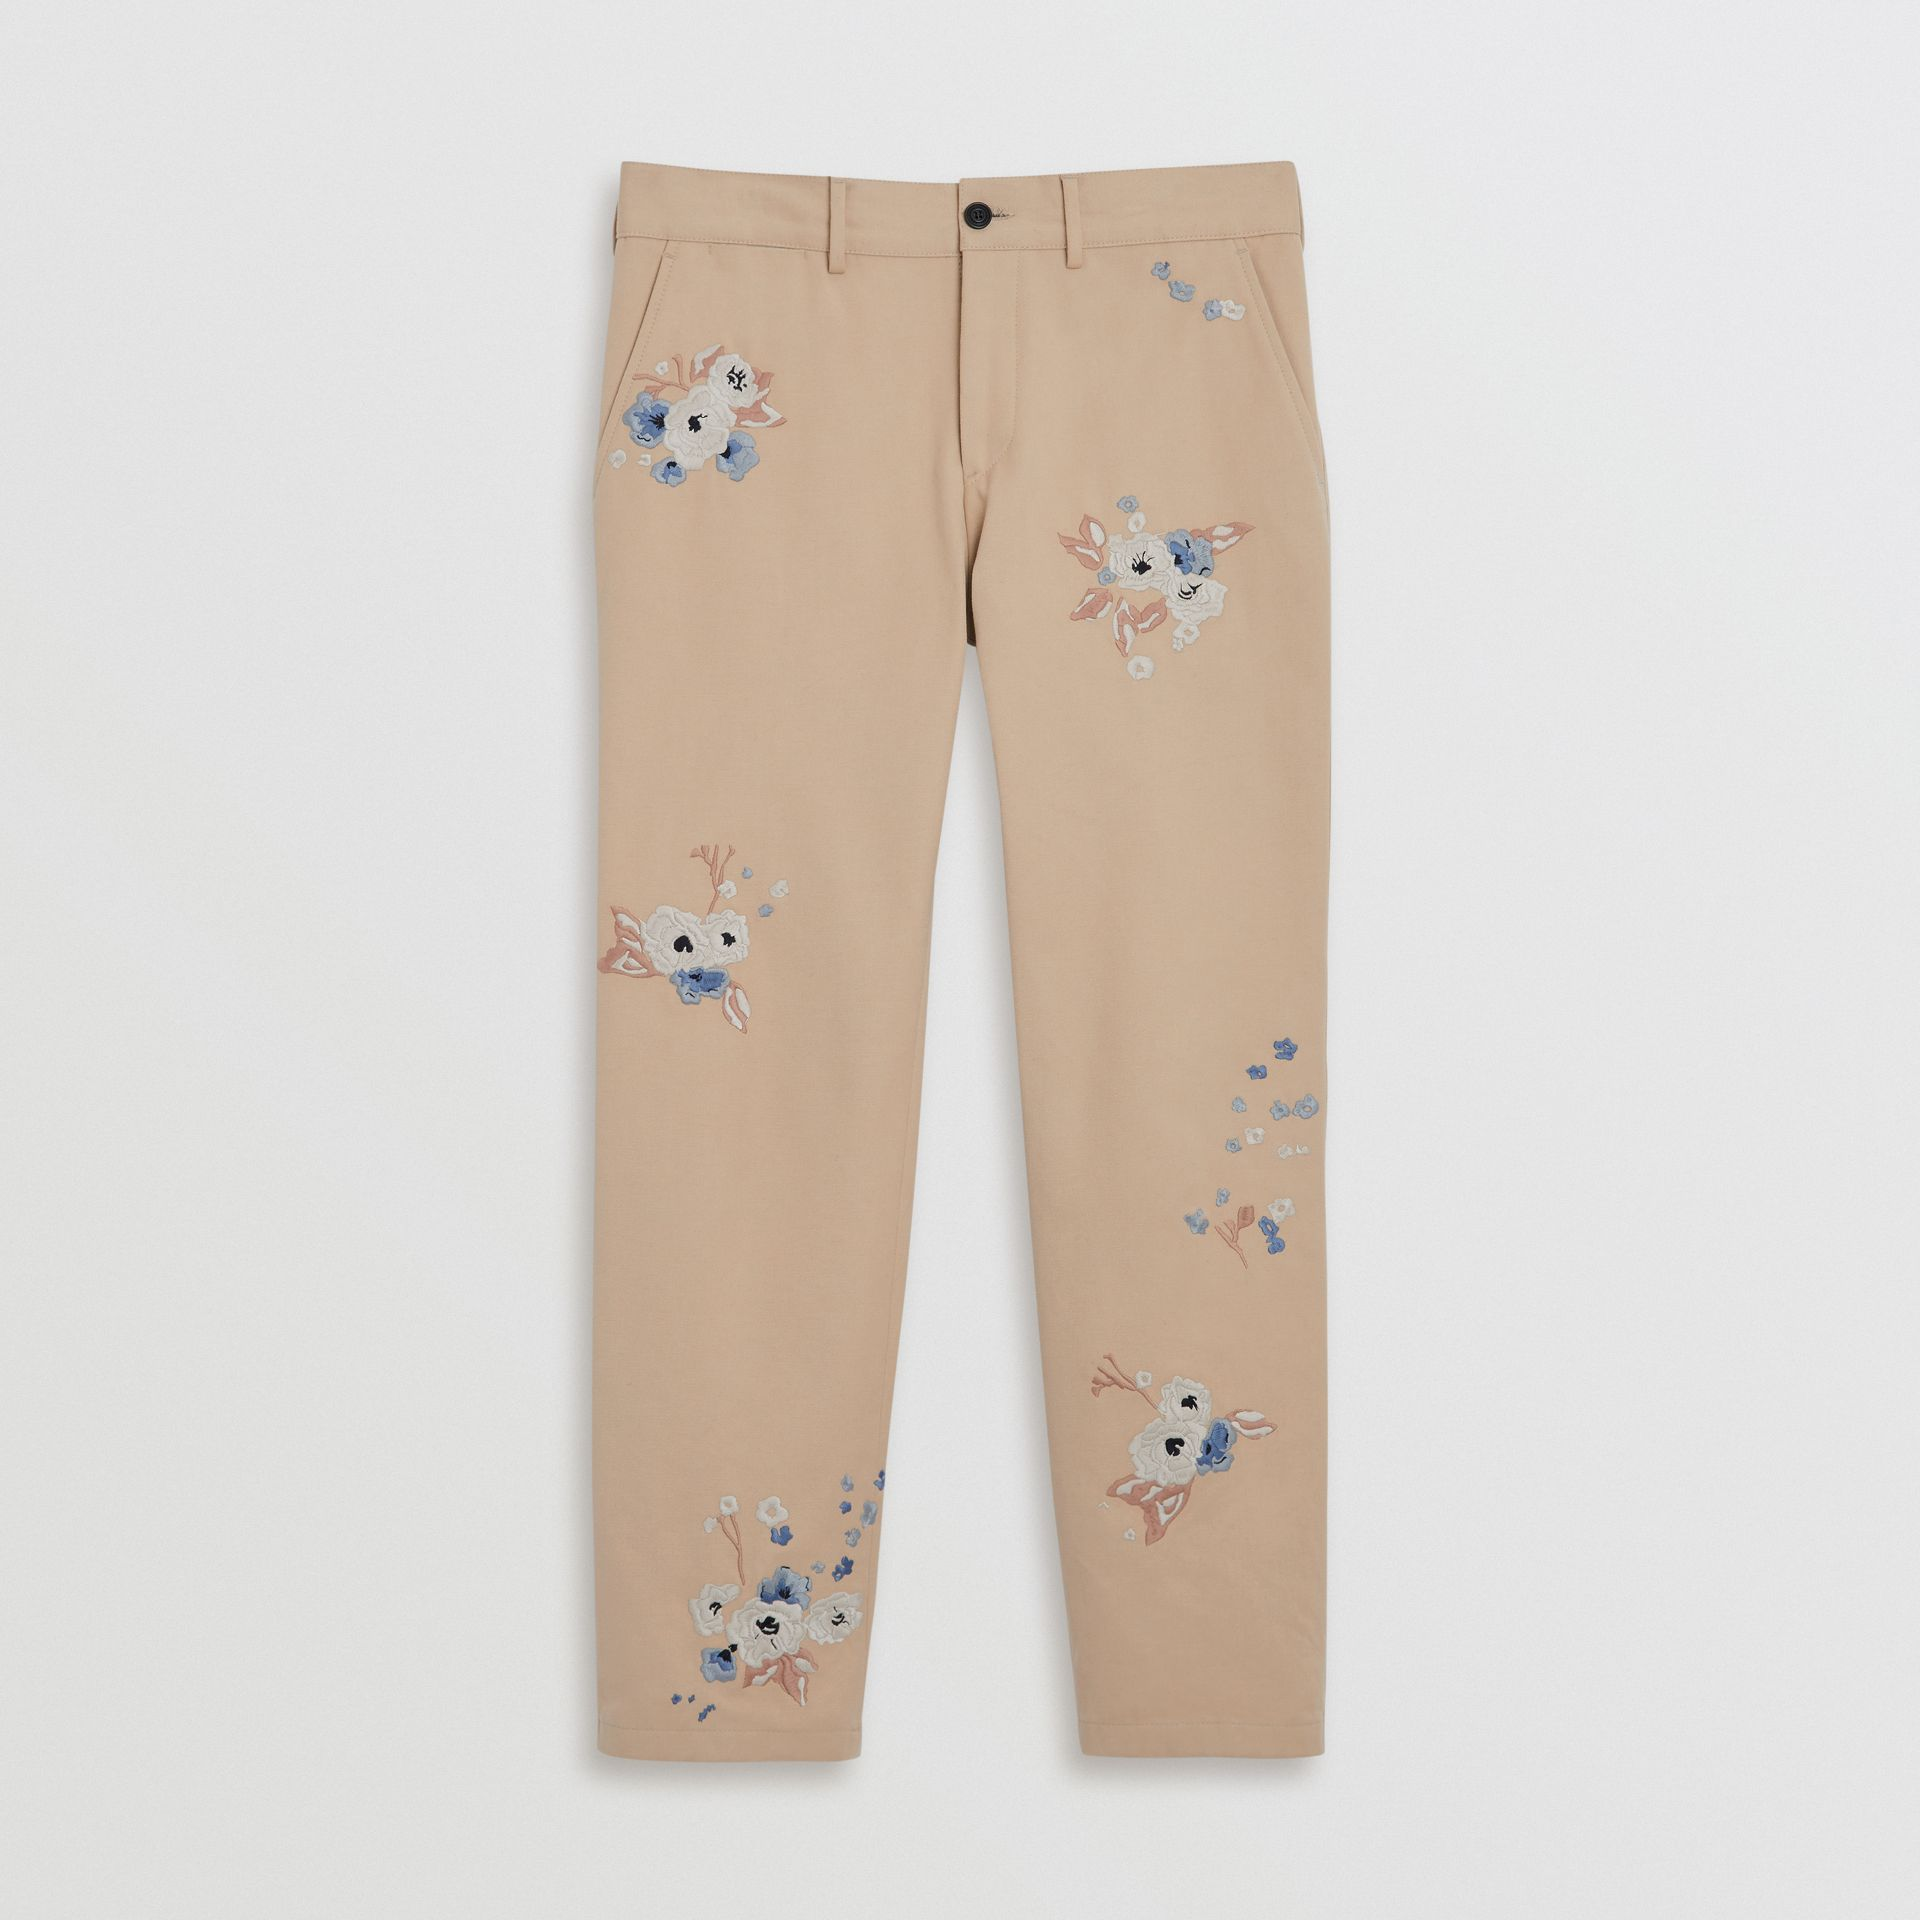 Slim Fit Floral Embroidered Cotton Chinos in Stone - Men | Burberry Australia - gallery image 3